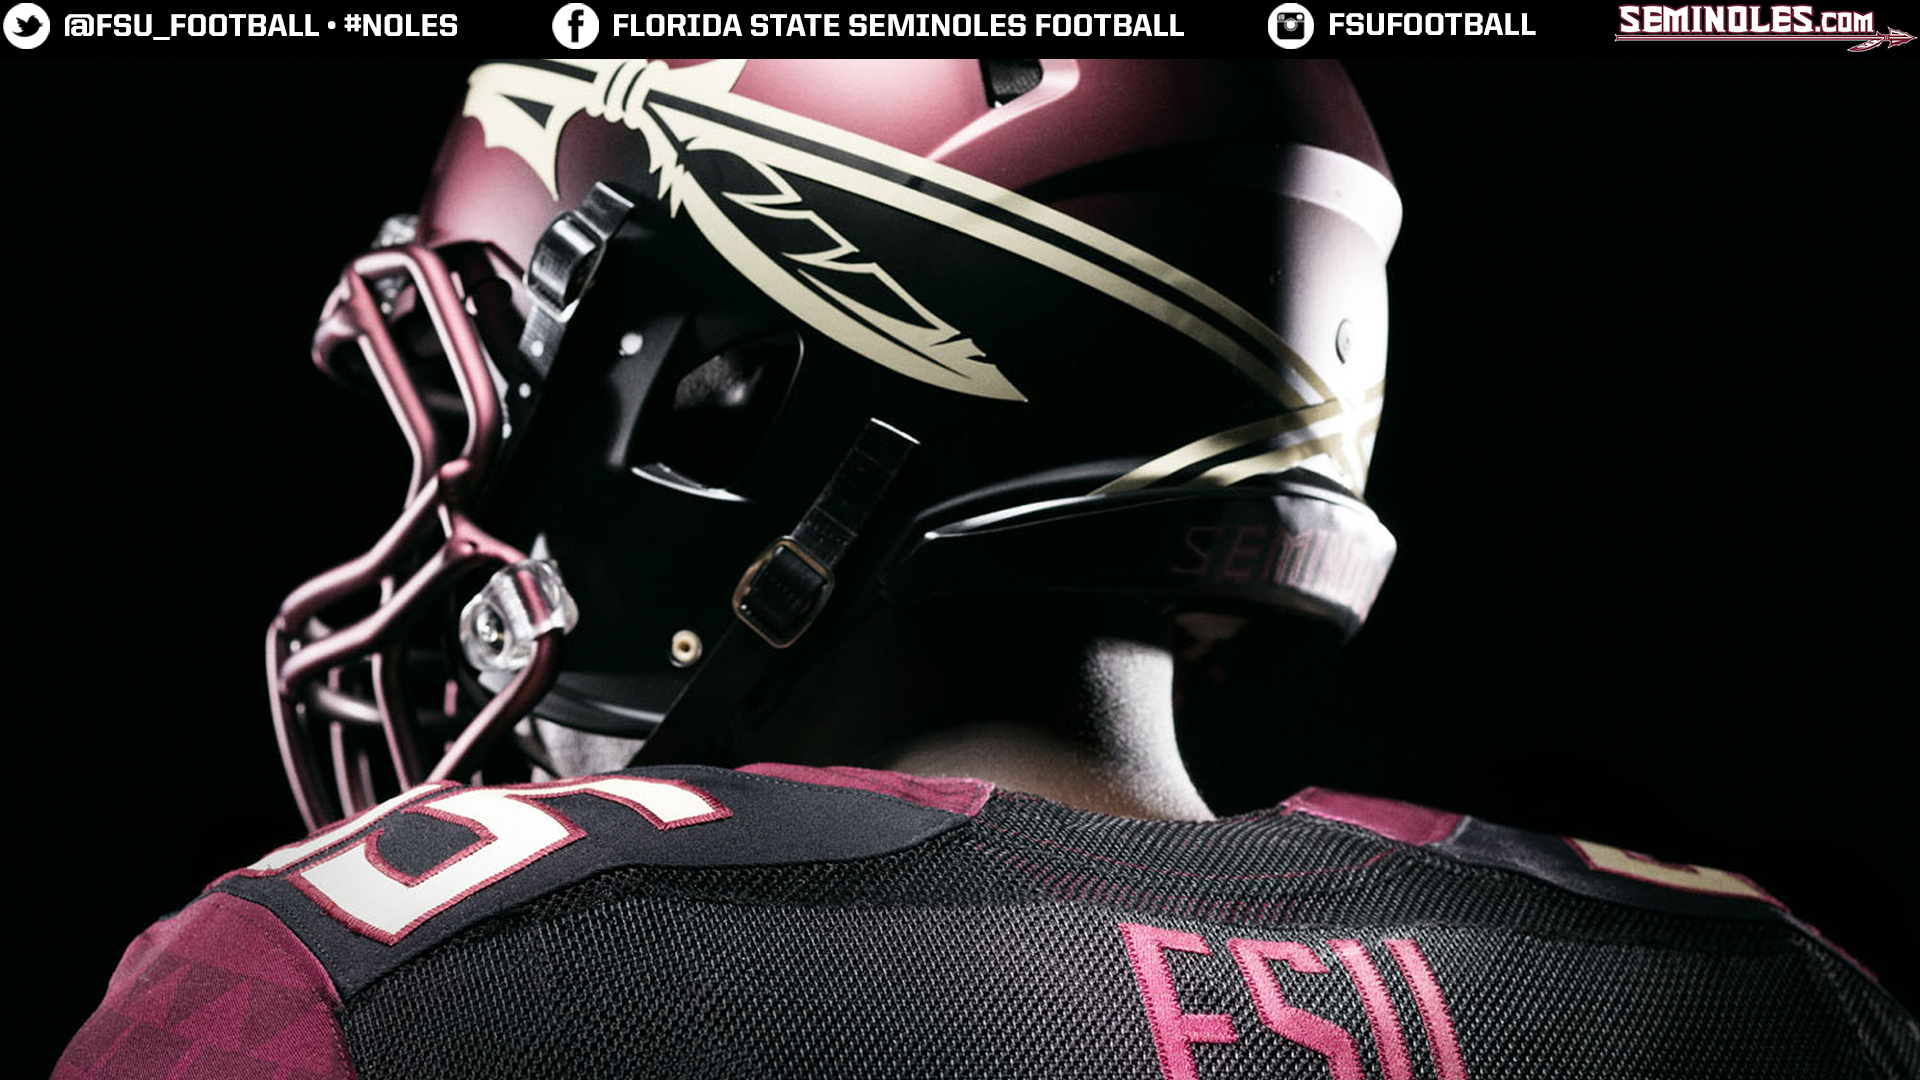 Seminoles desktop wallpapers widescreenfootball2 voltagebd